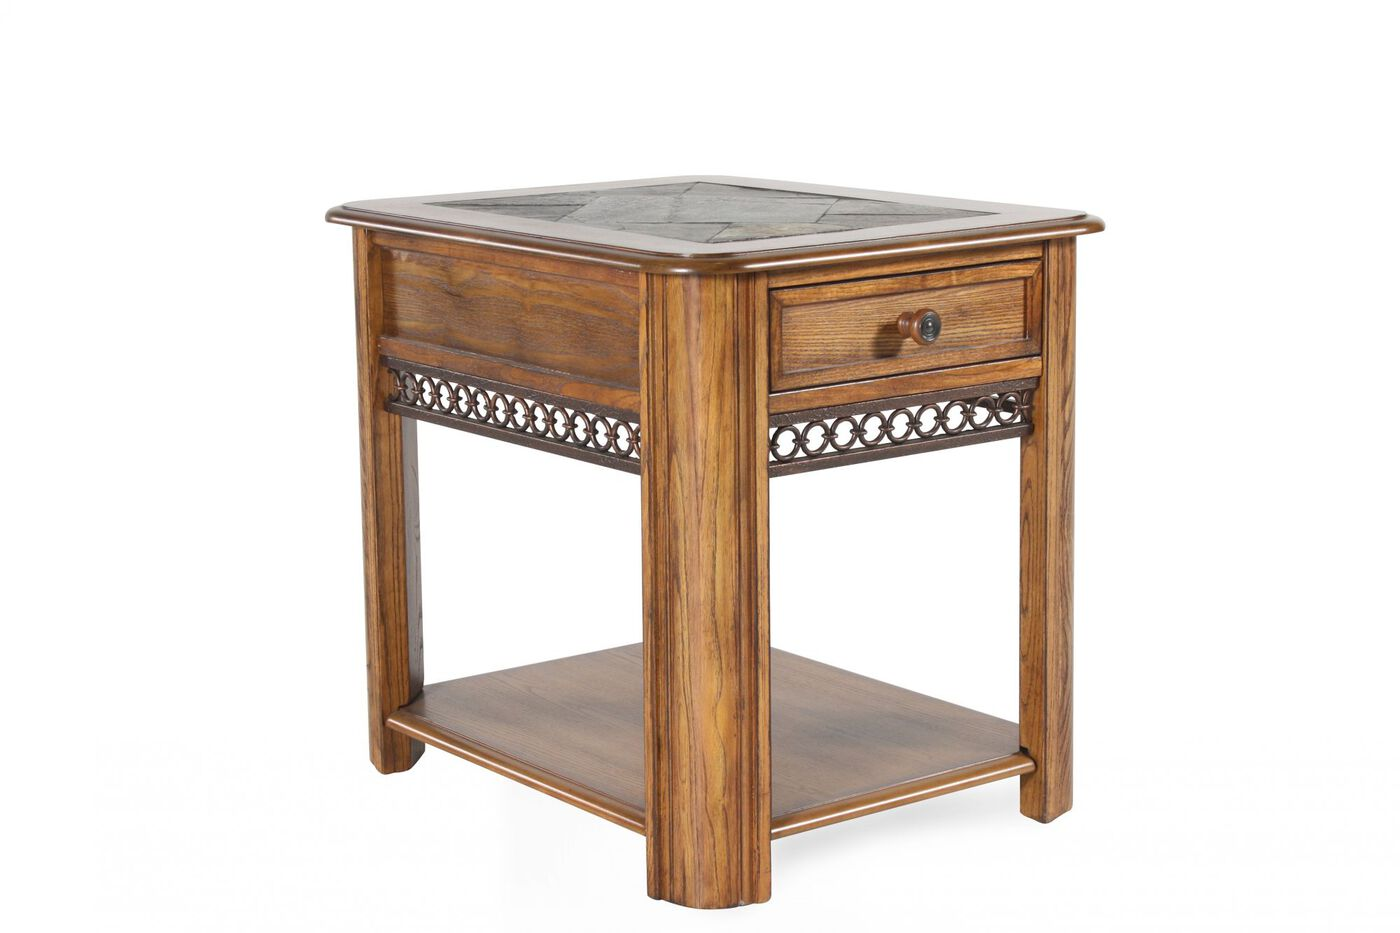 Traditional Slate-Inset End Table In Rustic Oak